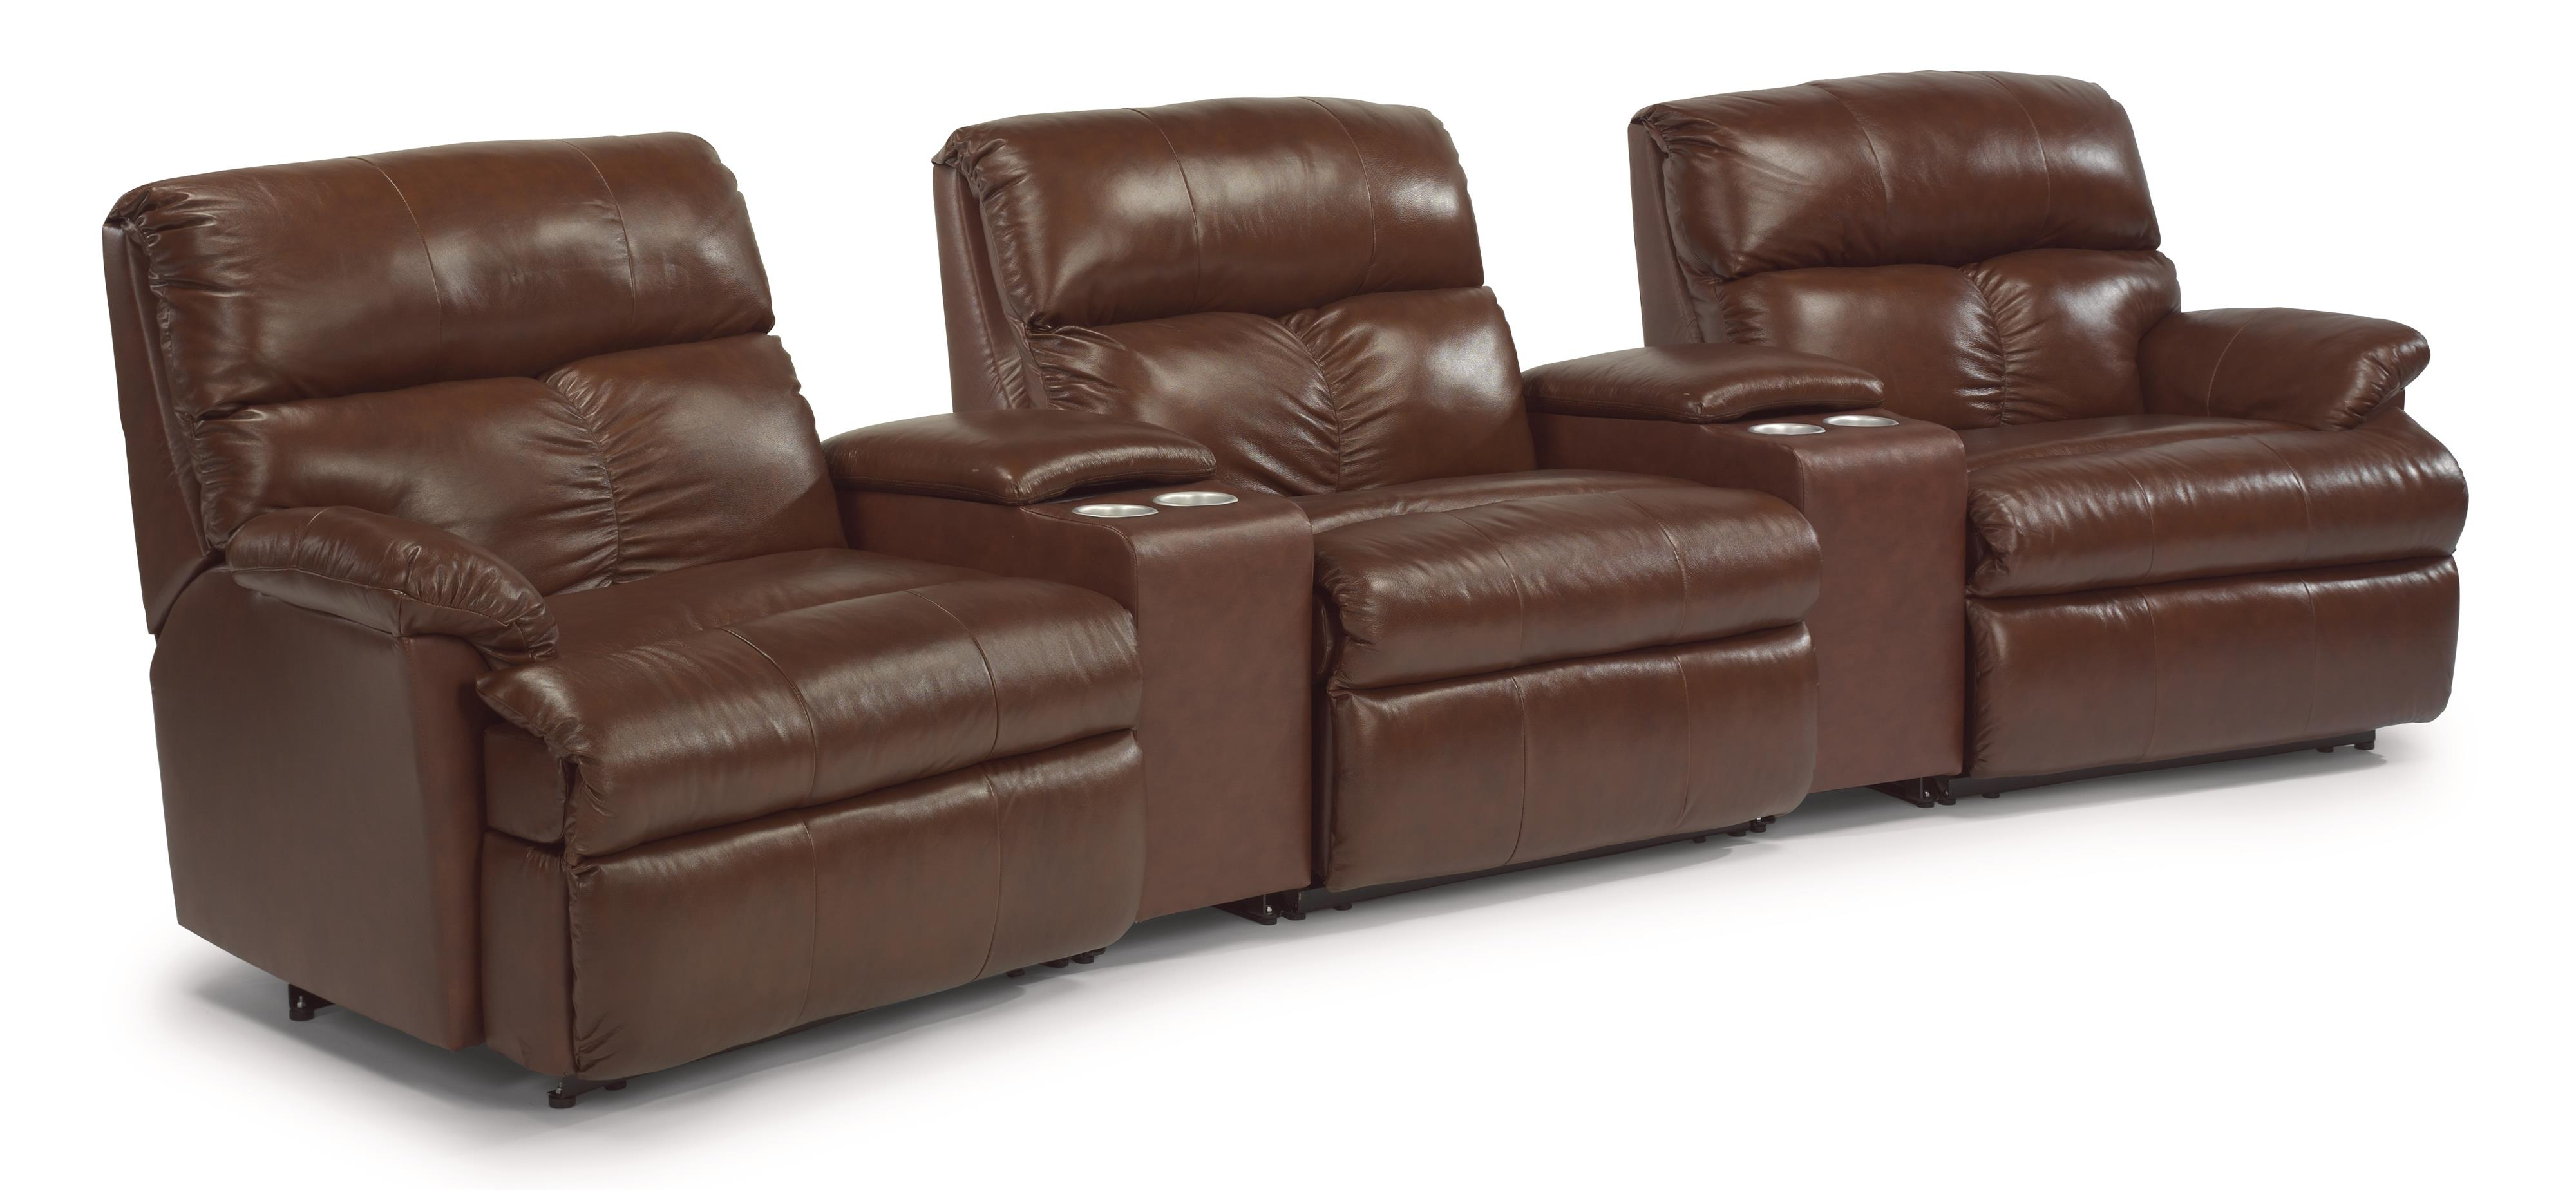 Flexsteel Triton Five Piece Power Reclining Home Theater